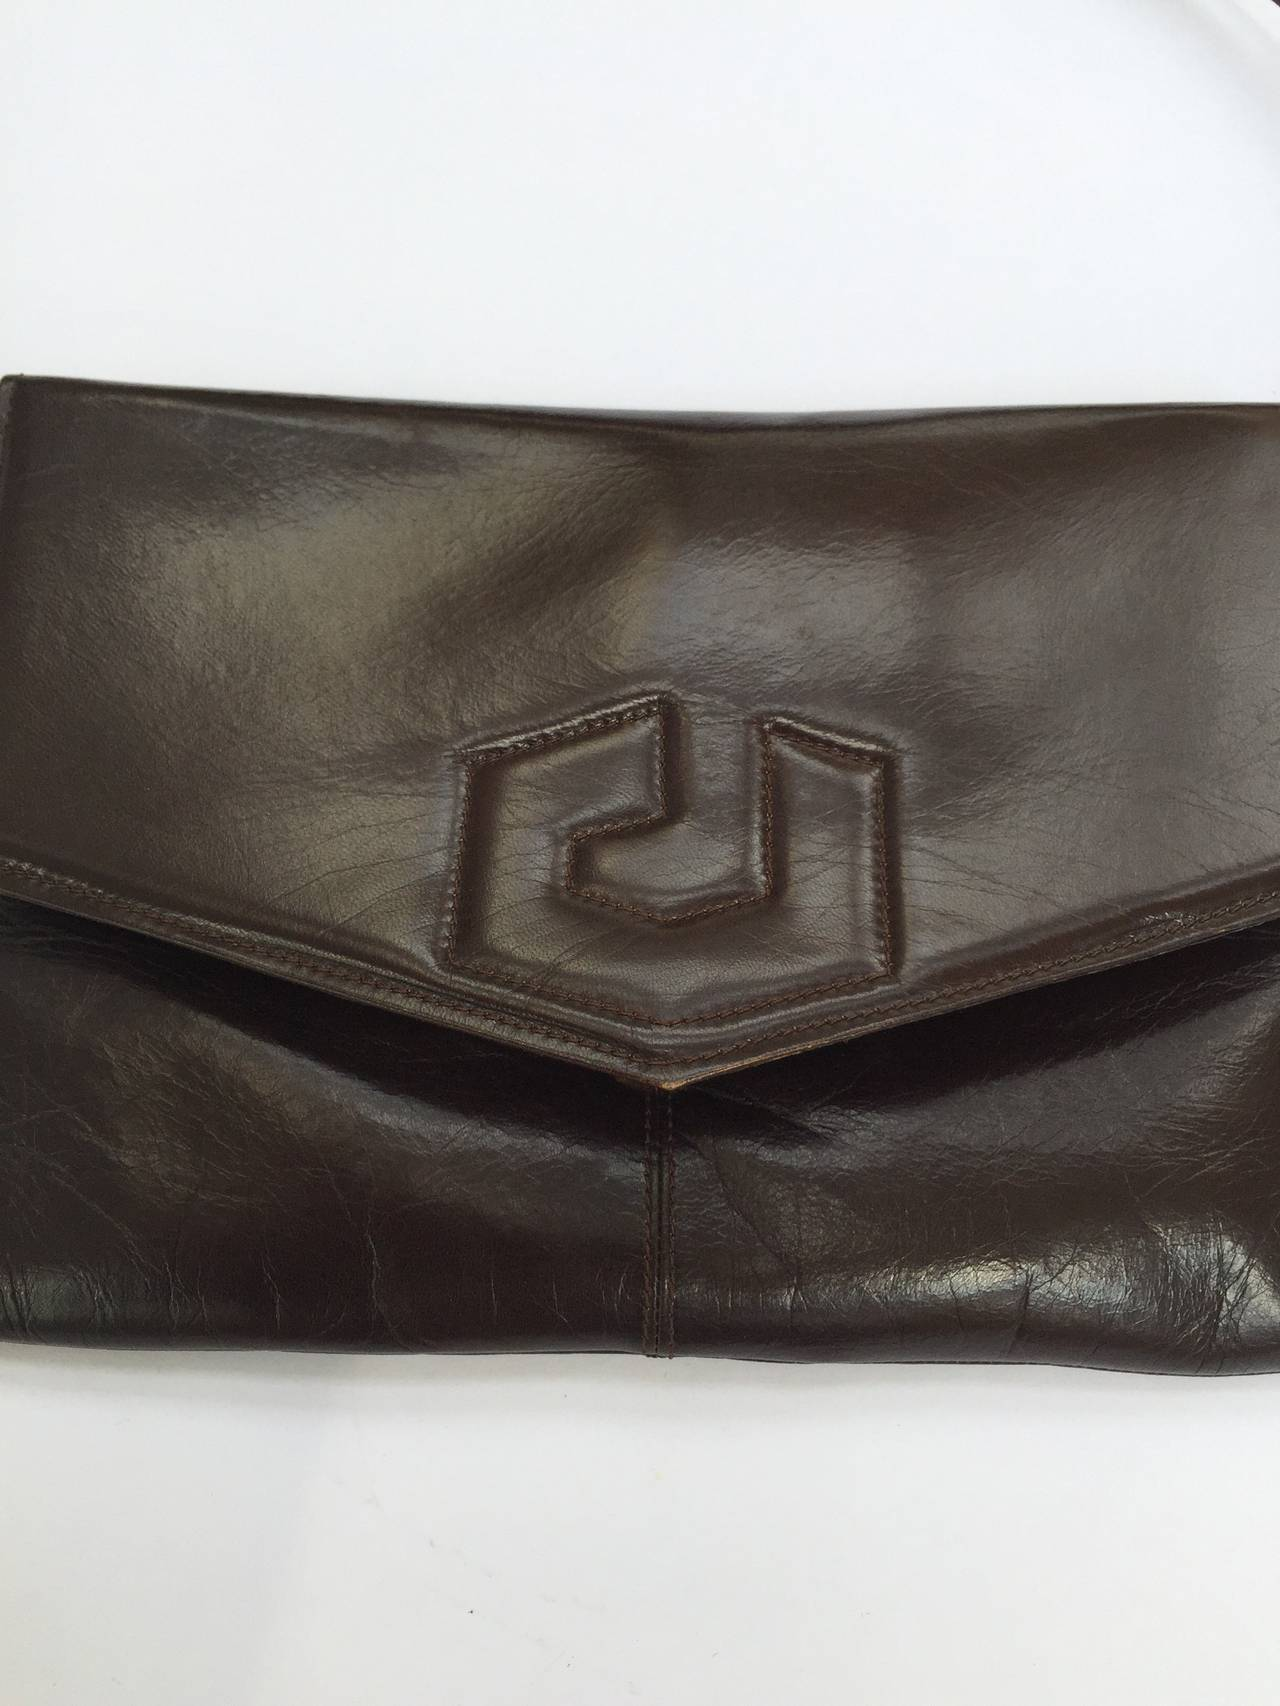 Black Charles Jourdan 70s brown leather shoulder / clutch handbag. For Sale